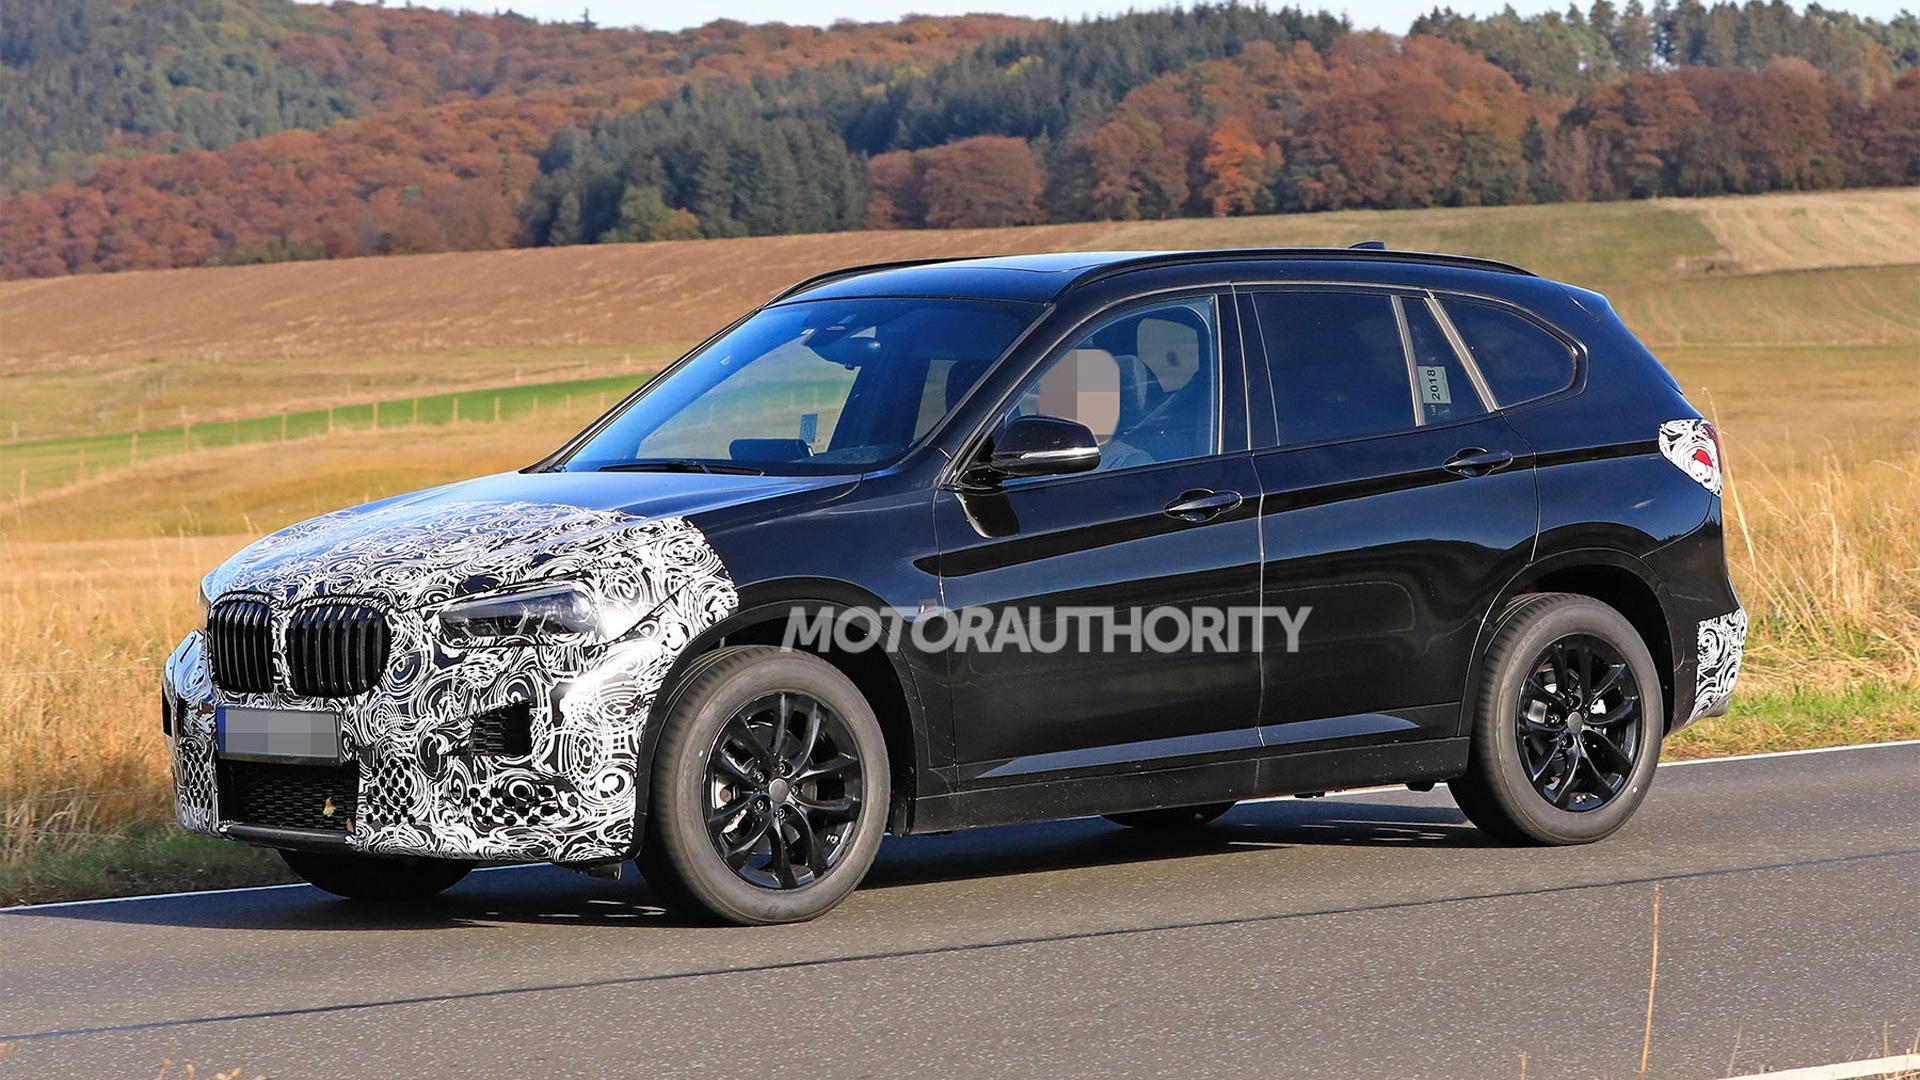 66 The Best 2020 BMW X1 Style